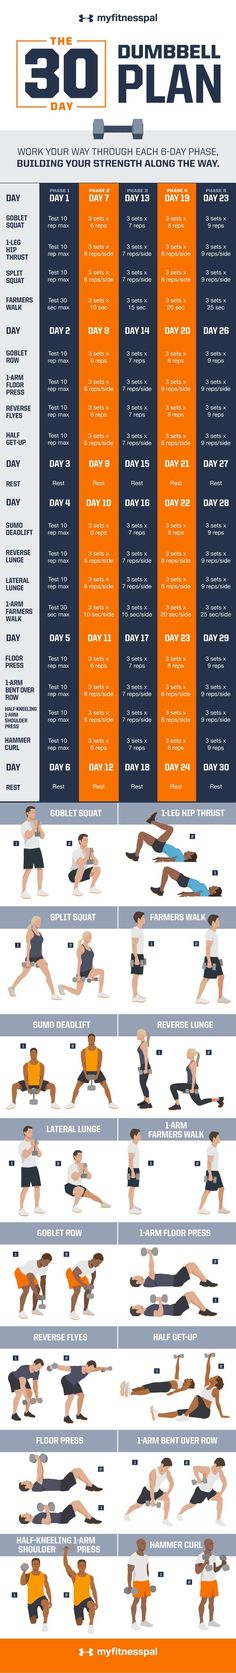 30 Day Dumbbell Plan workout - Tap the link to shop on our official online store! You can also join our affiliate and/or rewards programs for FREE!